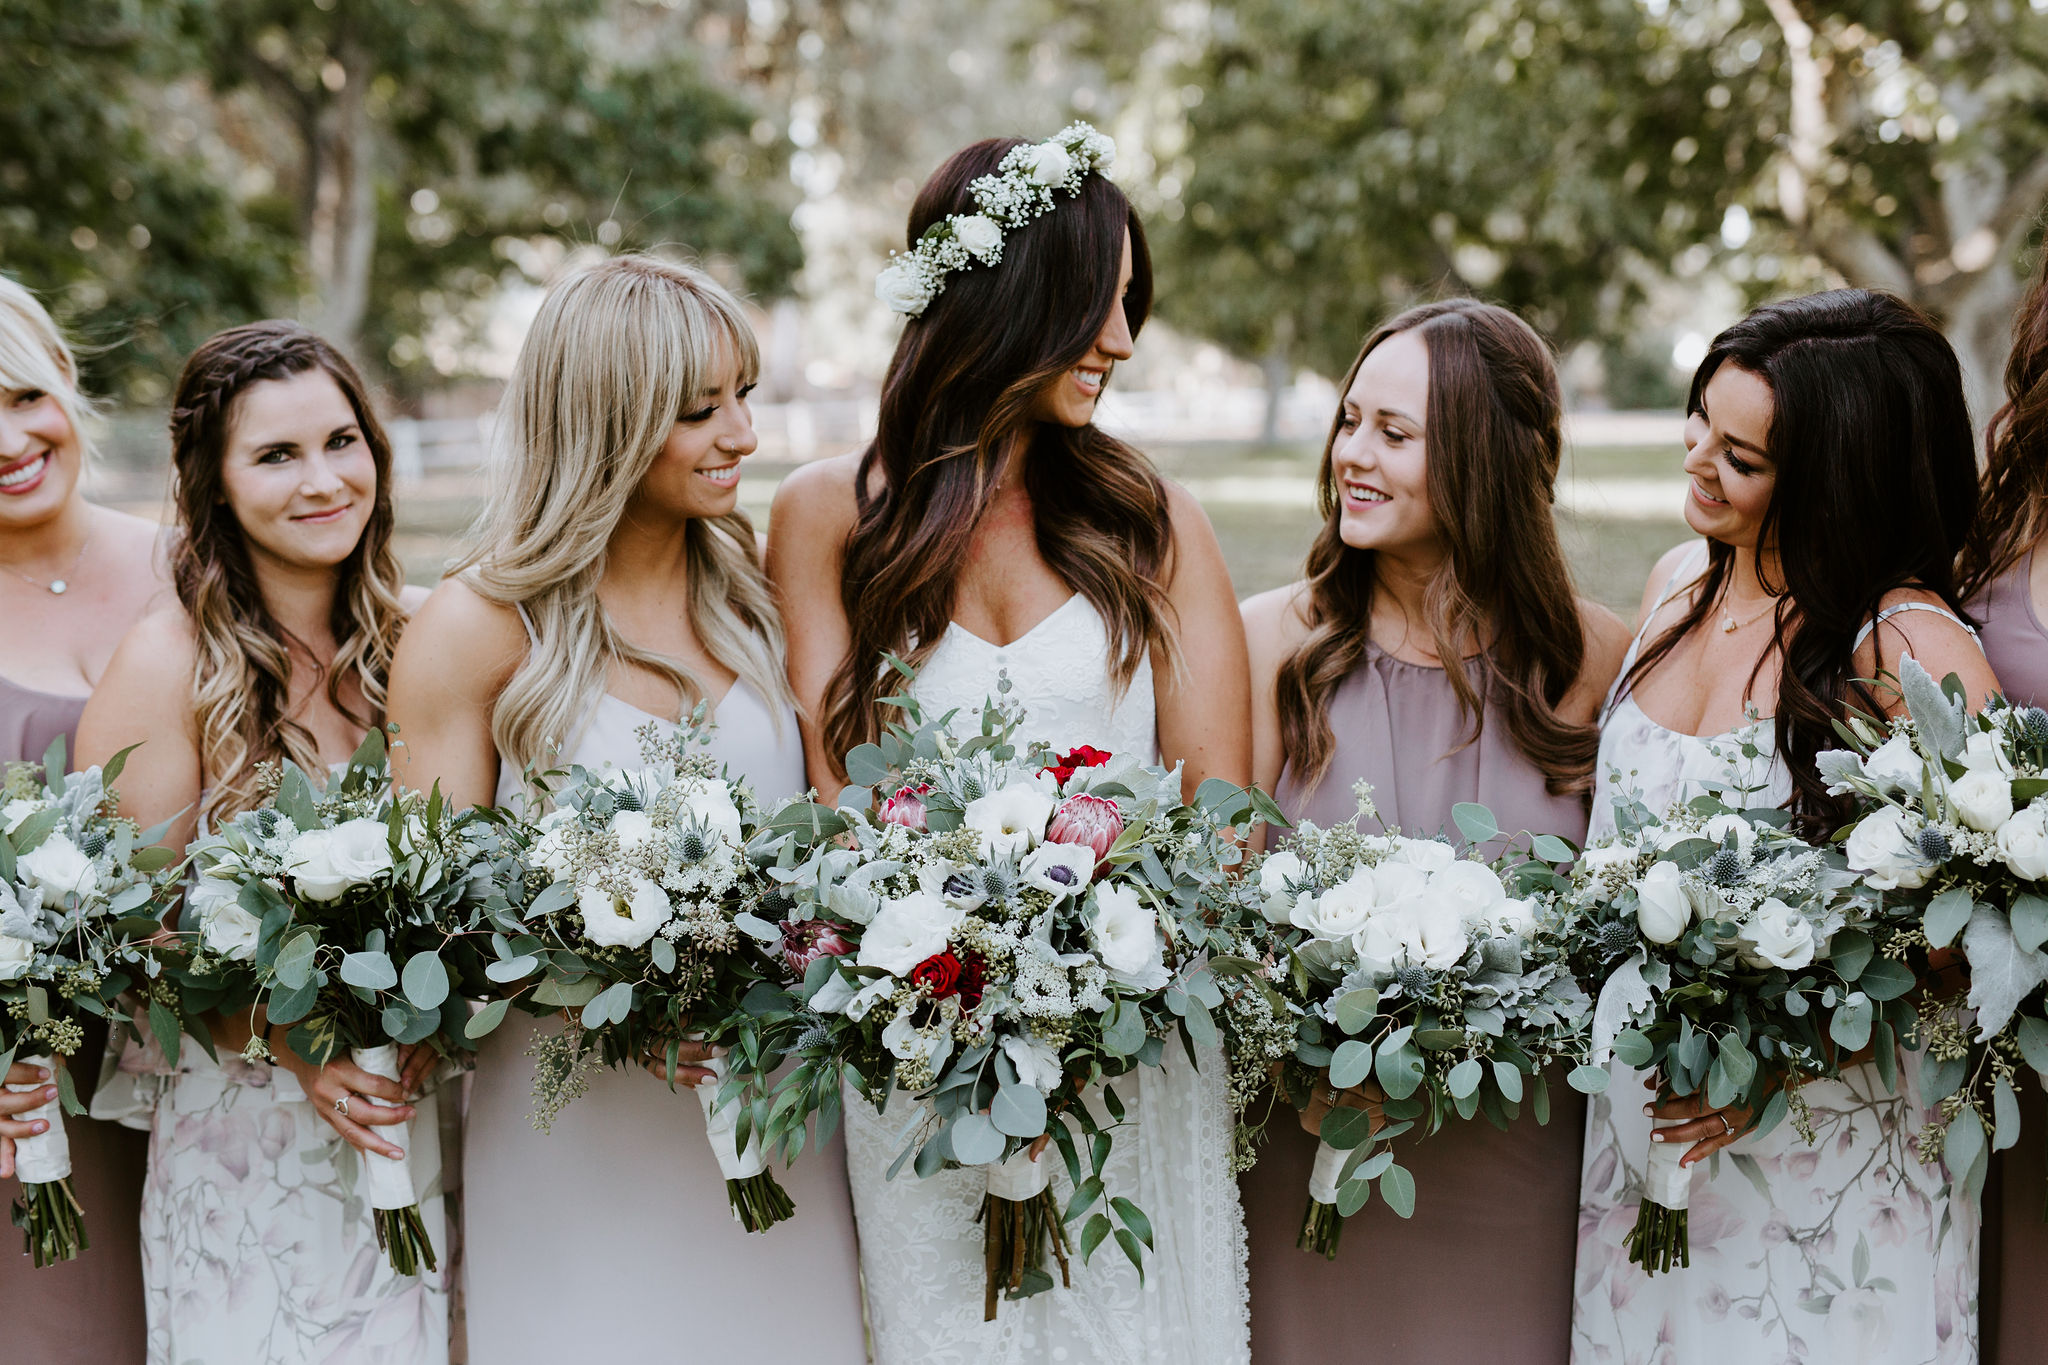 WalnutGroveWedding_Geoff&LyndsiPhotography_Casie&Matt_Bridesmaids17.jpg